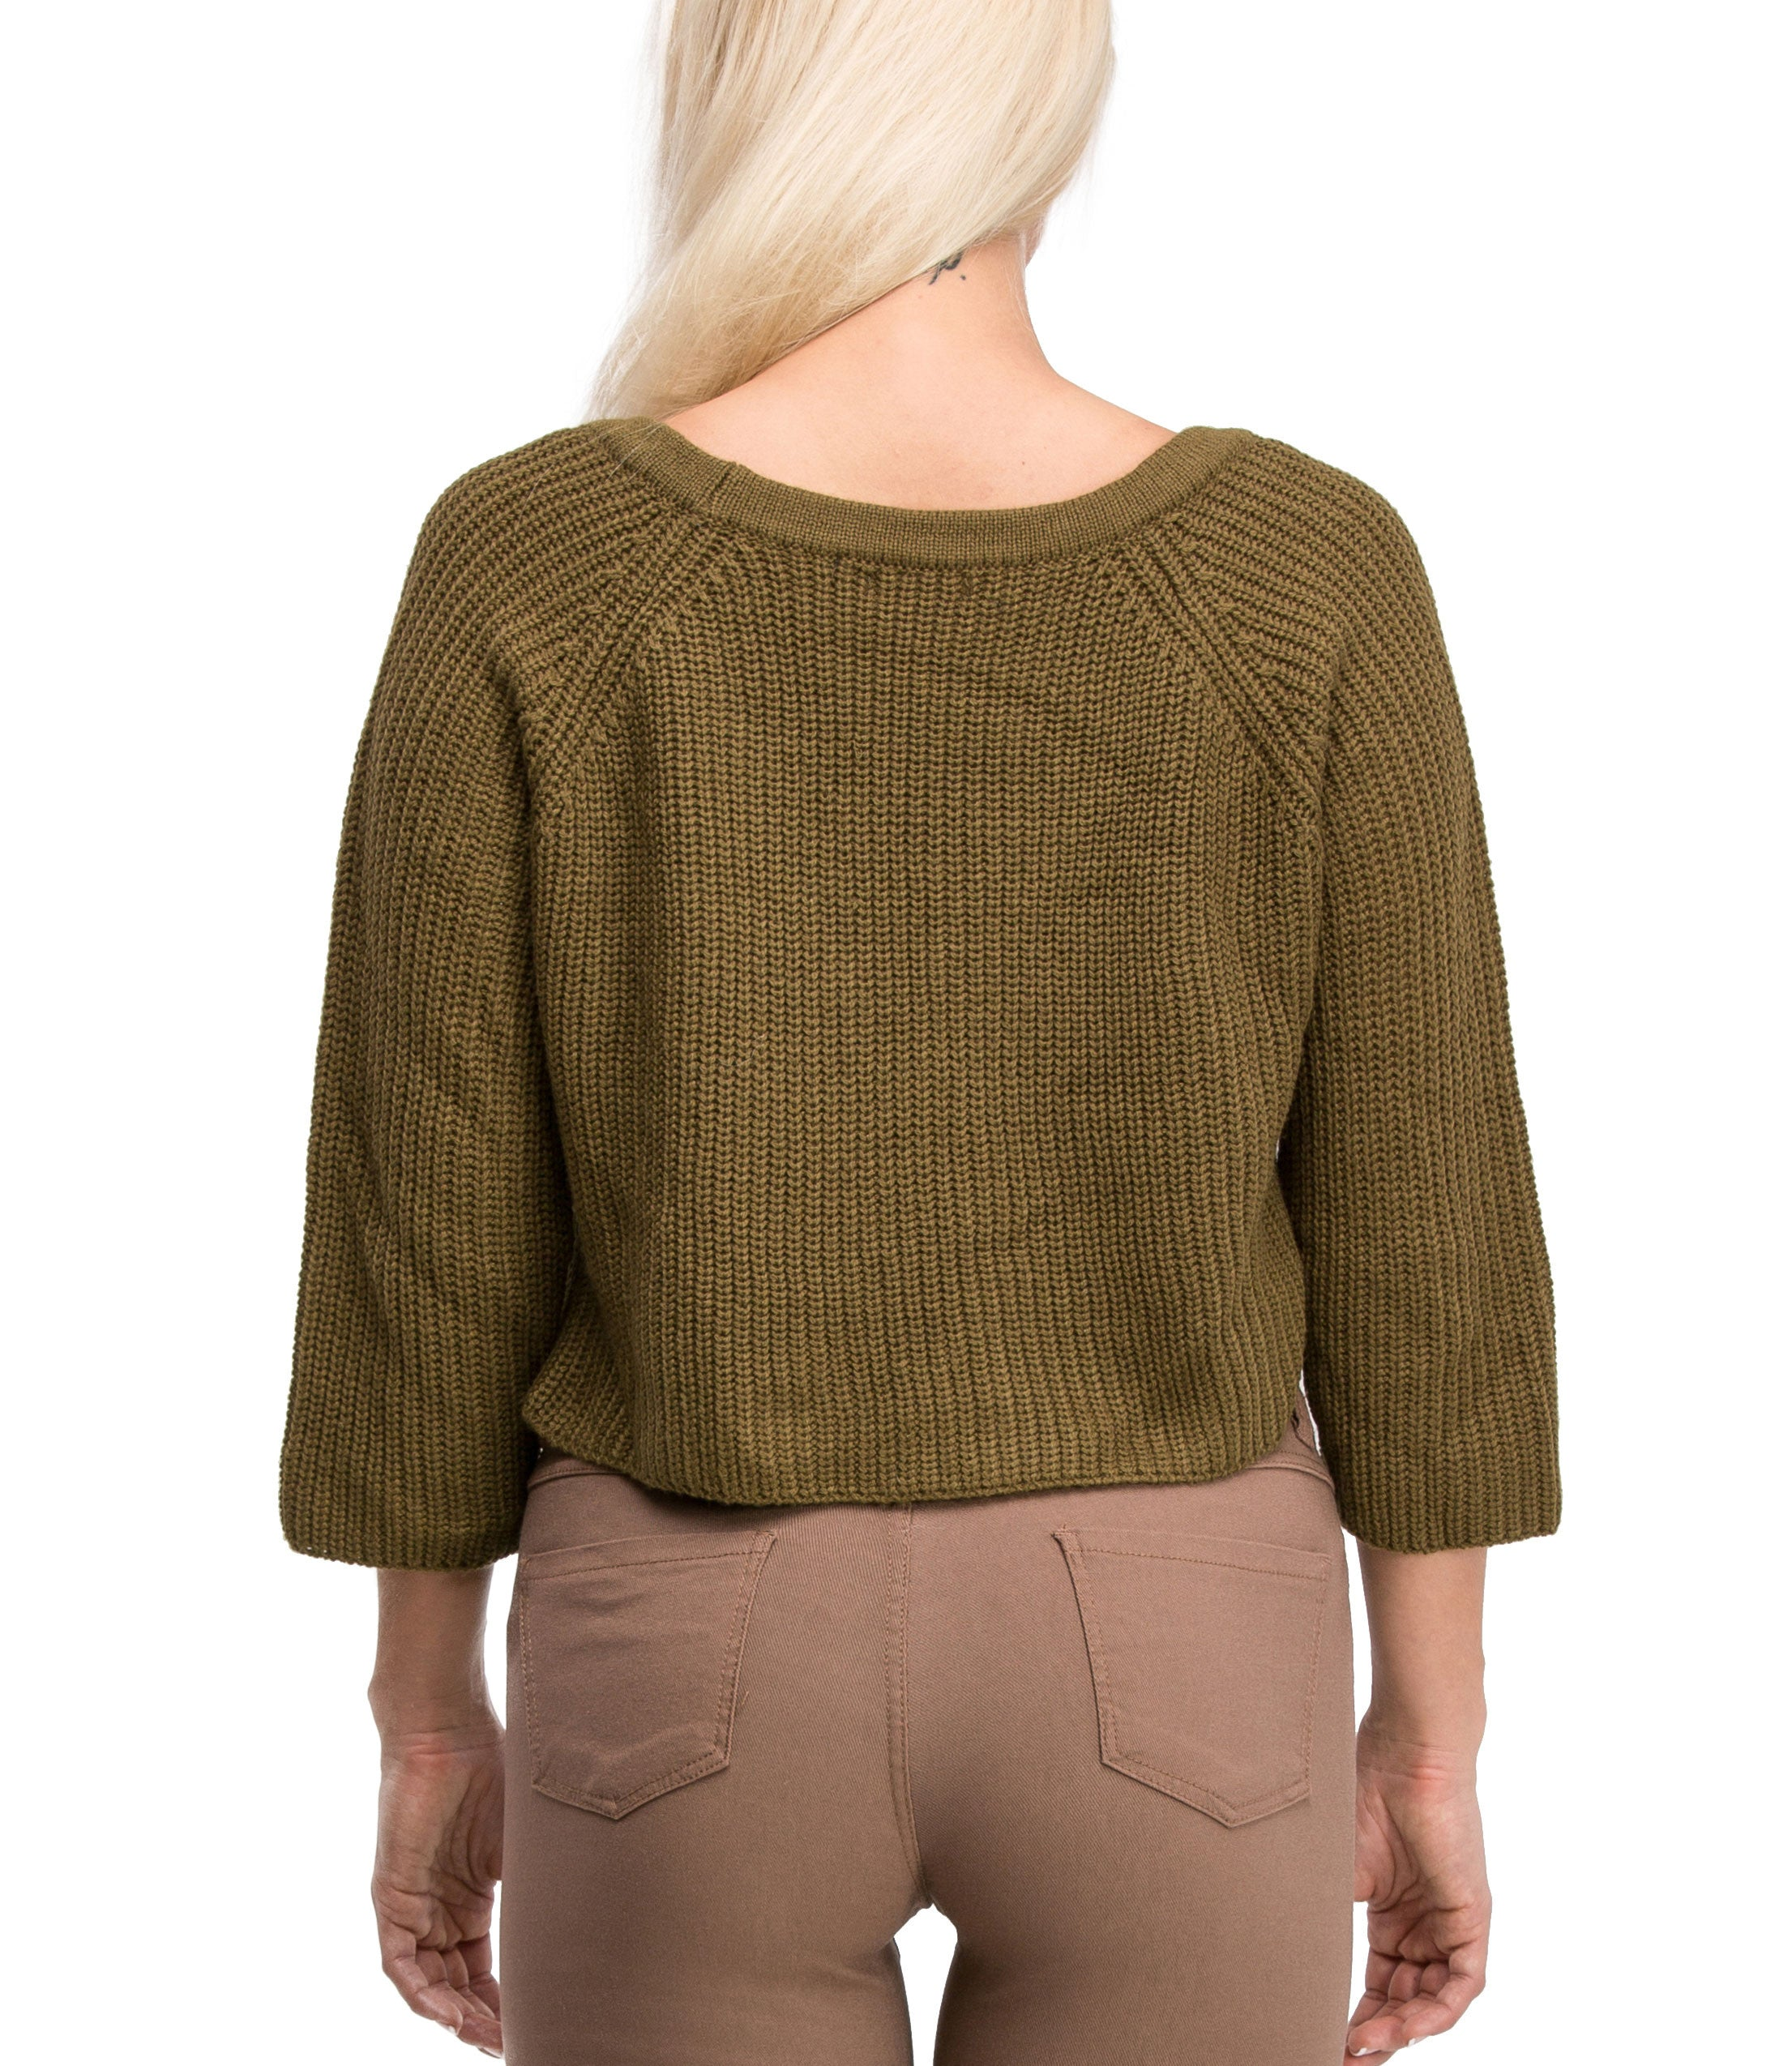 Irresistible Sexy Medium Sleeve Lace Up Crop Top Sweater (Olive) - Poplooks